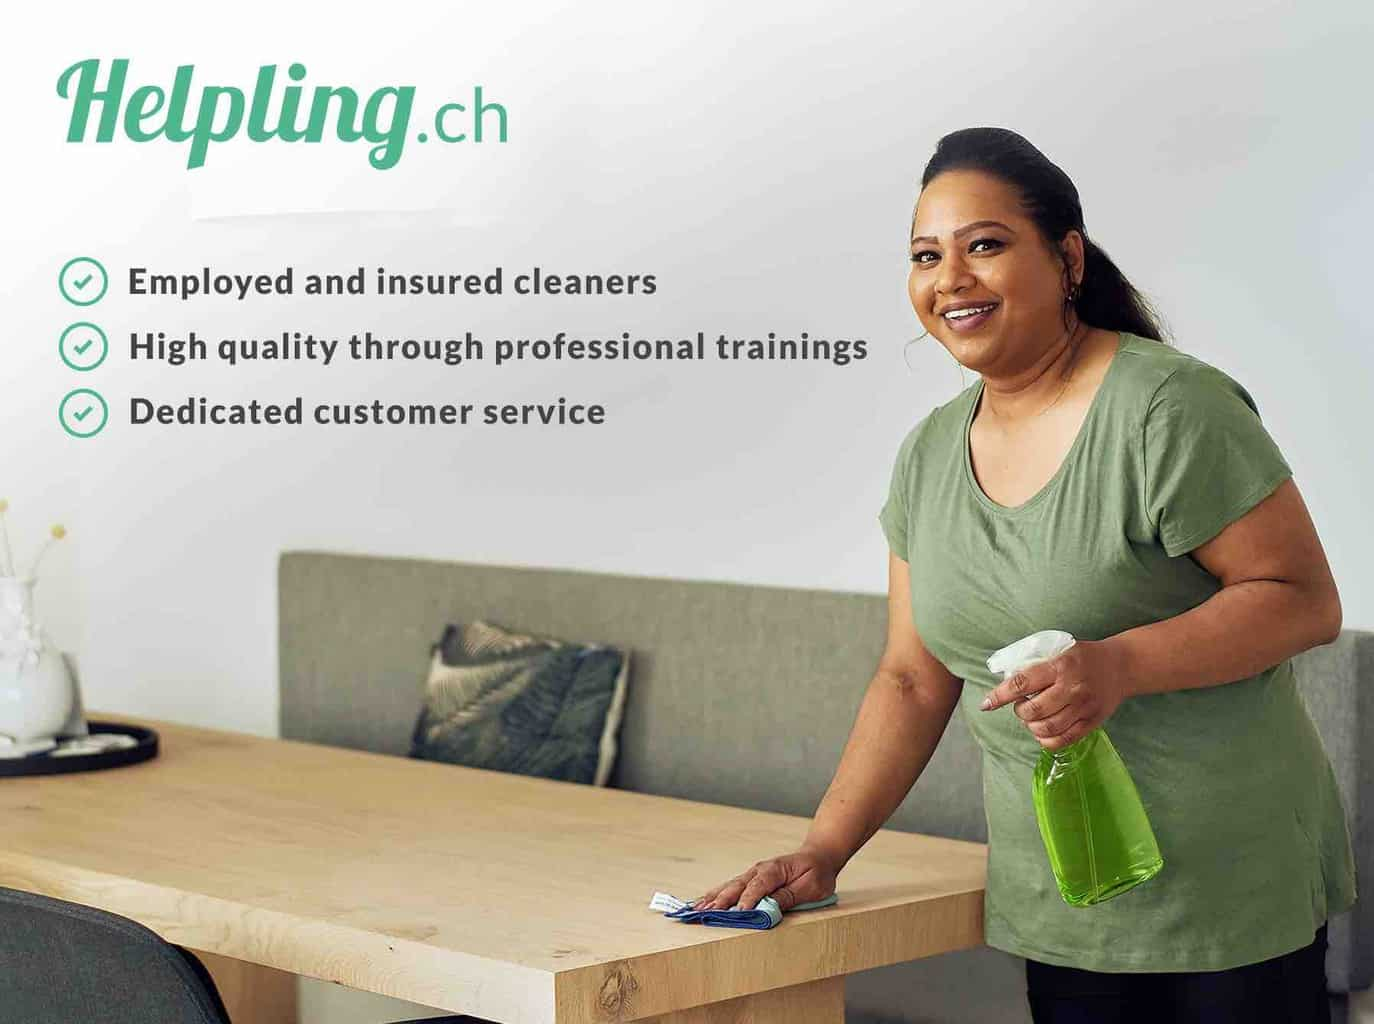 Enjoy A Spotless Home in Switzerland with Helpling